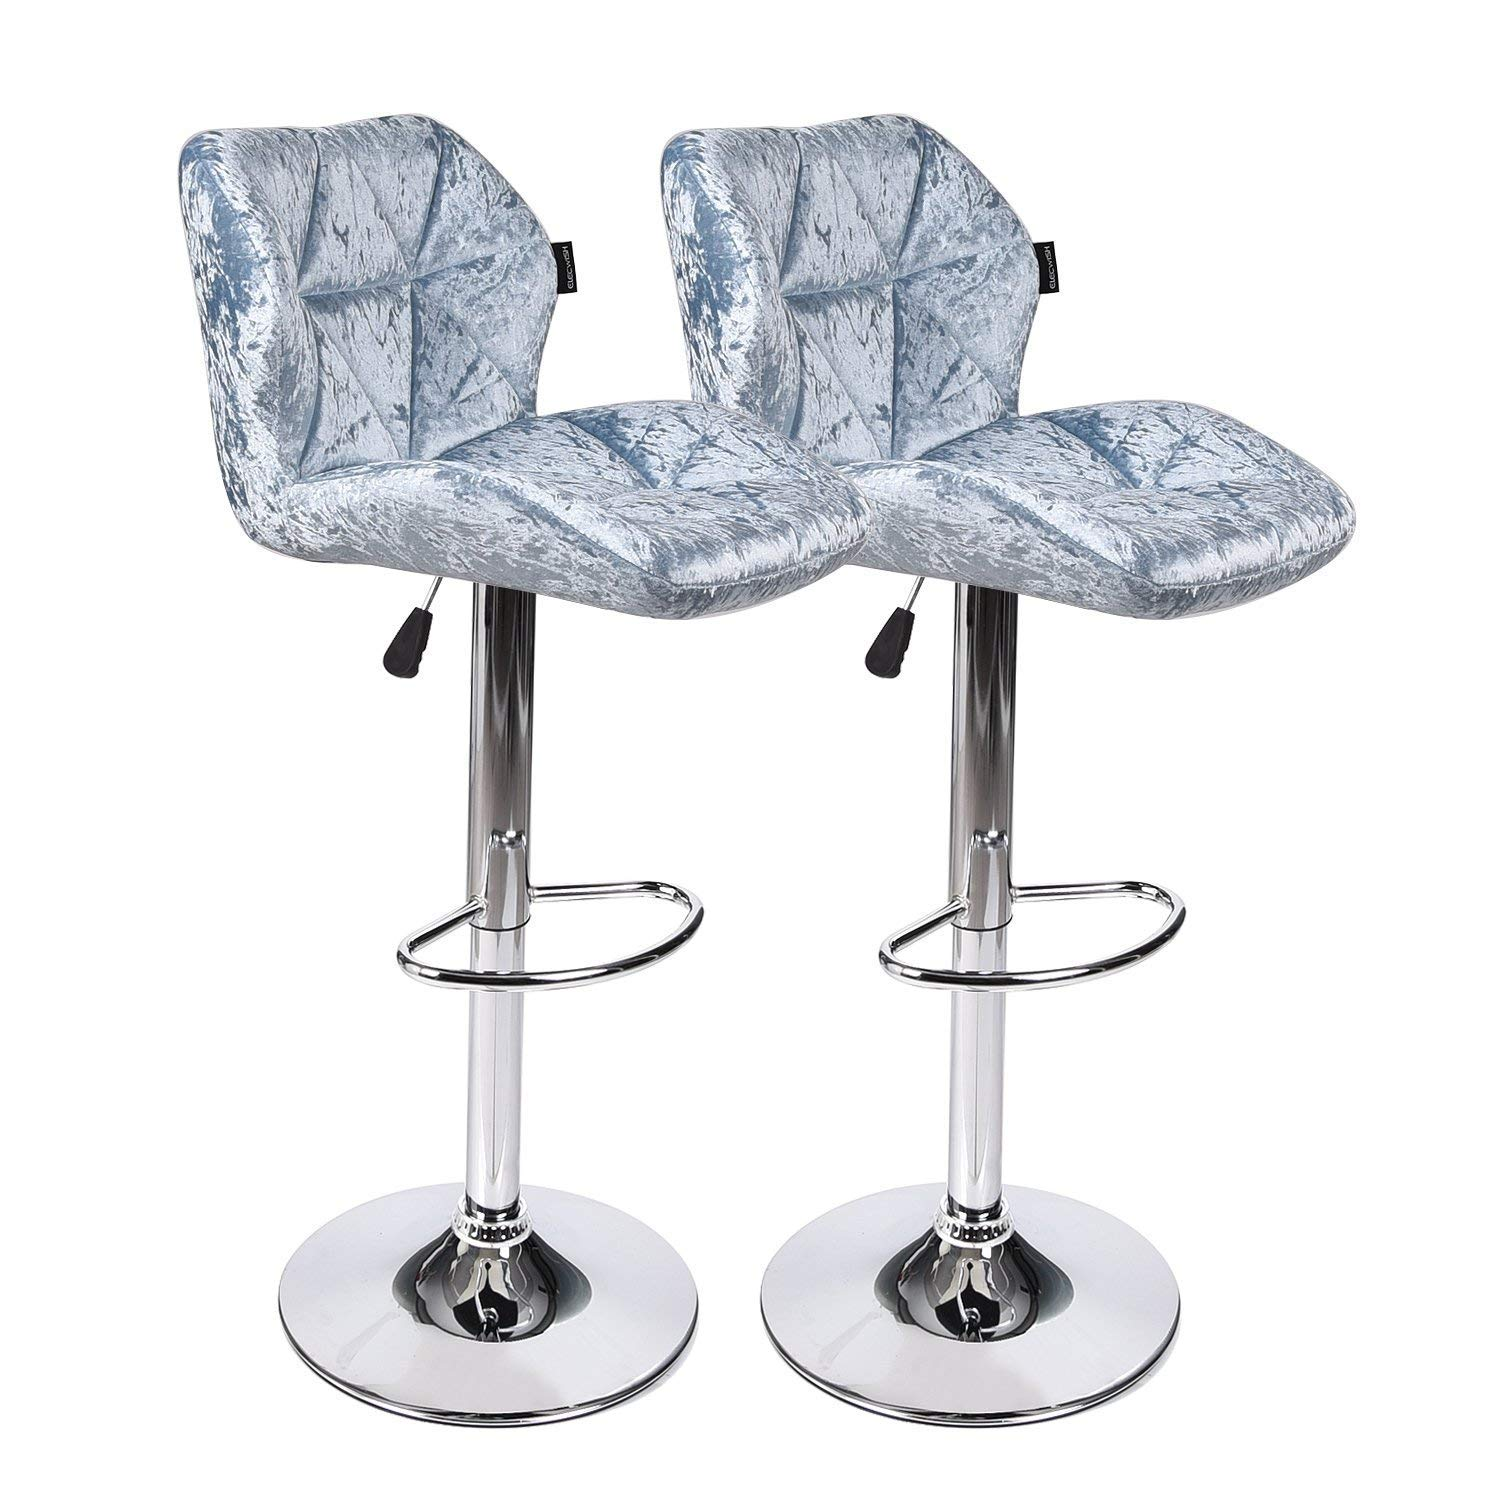 Counter Bar Stools Modern Design Swivel Chair with Velvet Surface Hydraulic Gas Lift for Bars and High Counters, Dining, Kitchen (Set of 2 Blue Barstool)